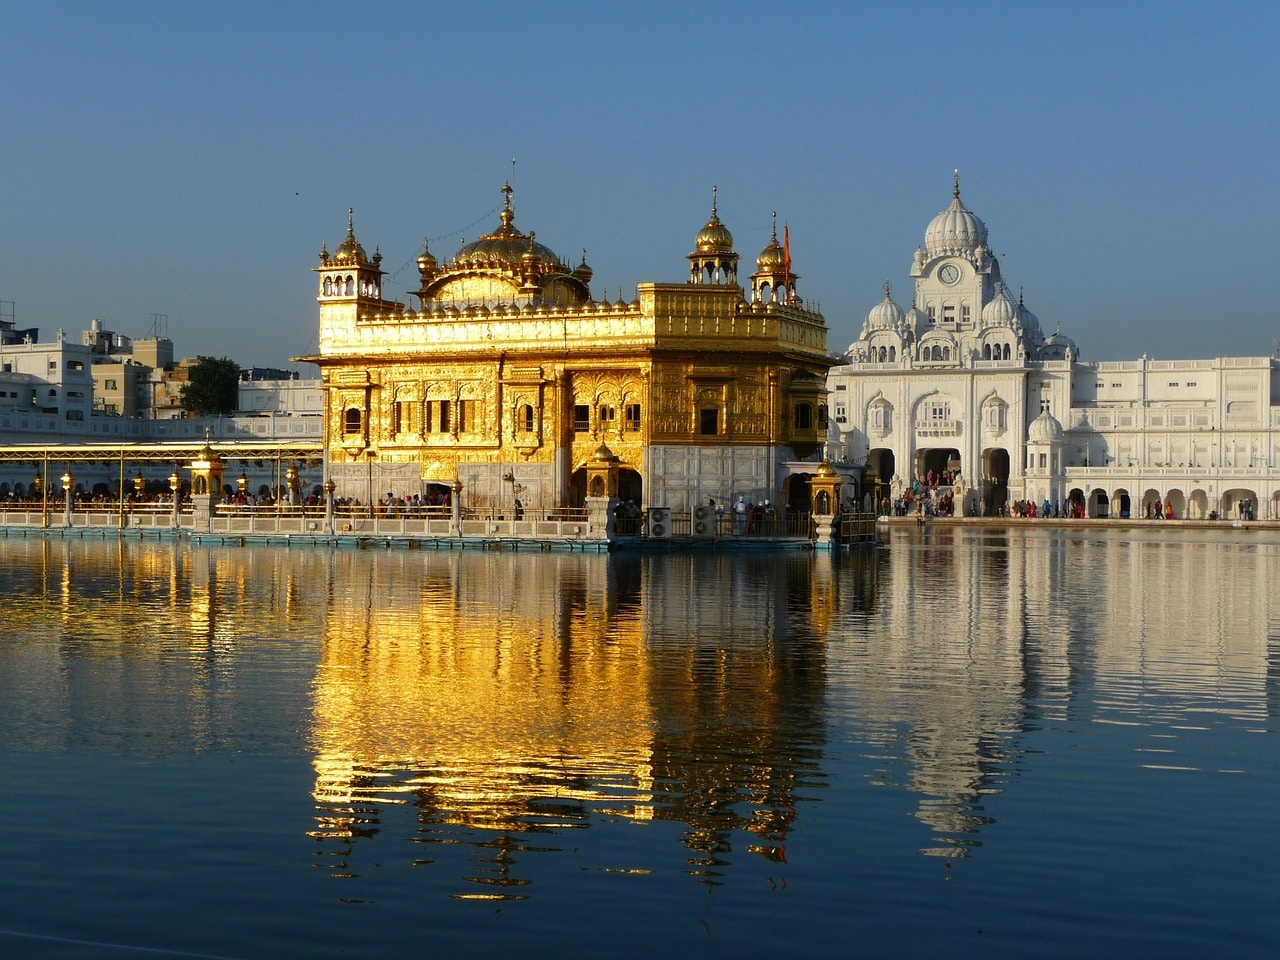 Gurudwara Harmandir Sahib - The Golden Temple, Amritsar, India